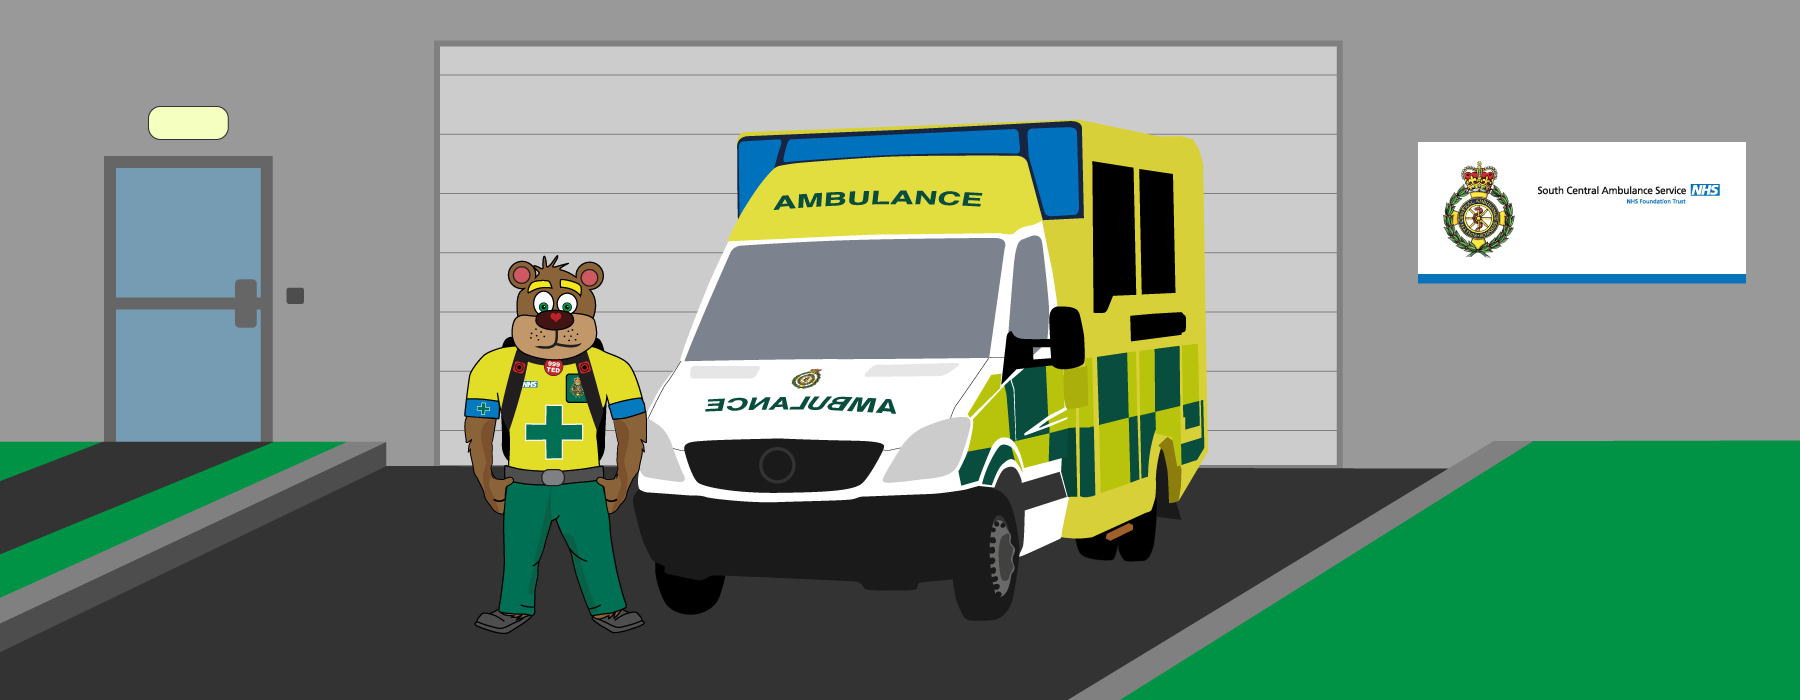 999 Ted and an ambulance